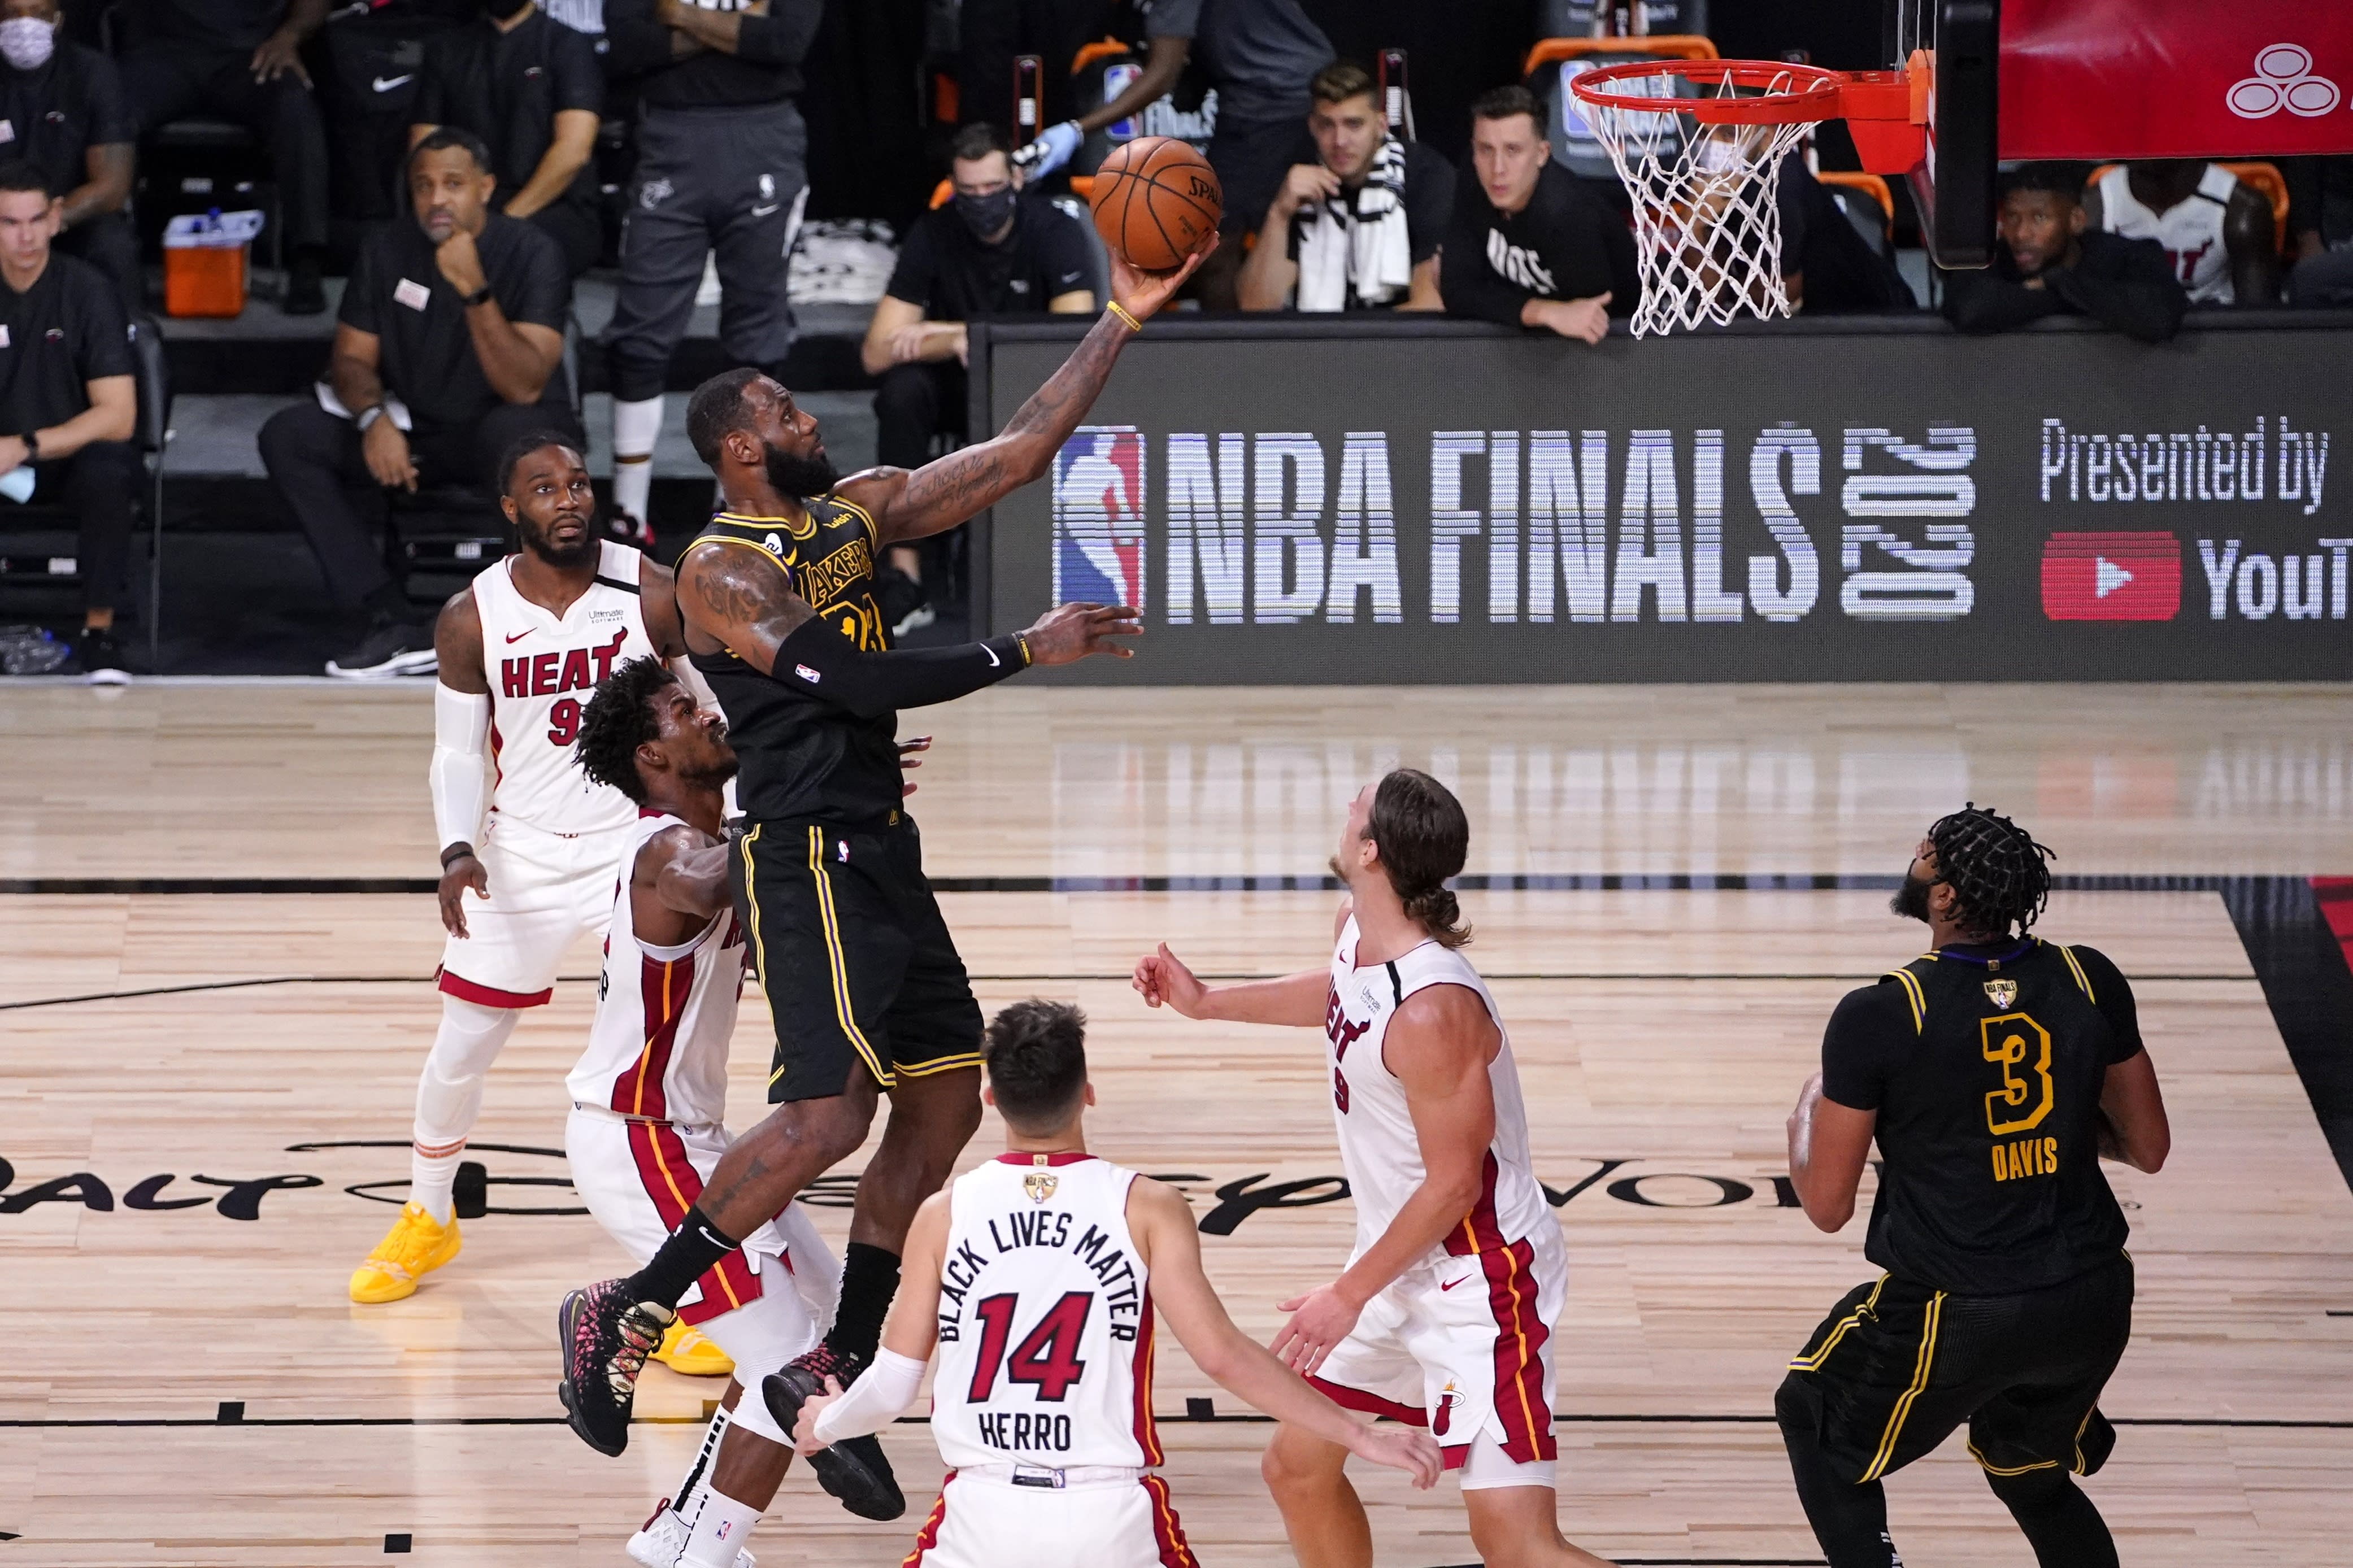 Los Angeles Lakers forward LeBron James (23) goes up for a shot between Miami Heat's Jimmy Butler, center left, Tyler Herro (14), and Kelly Olynyk (9) during the second half of Game 2 of basketball's NBA Finals, Friday, Oct. 2, 2020, in Lake Buena Vista, Fla. (AP Photo/Mark J. Terrill)